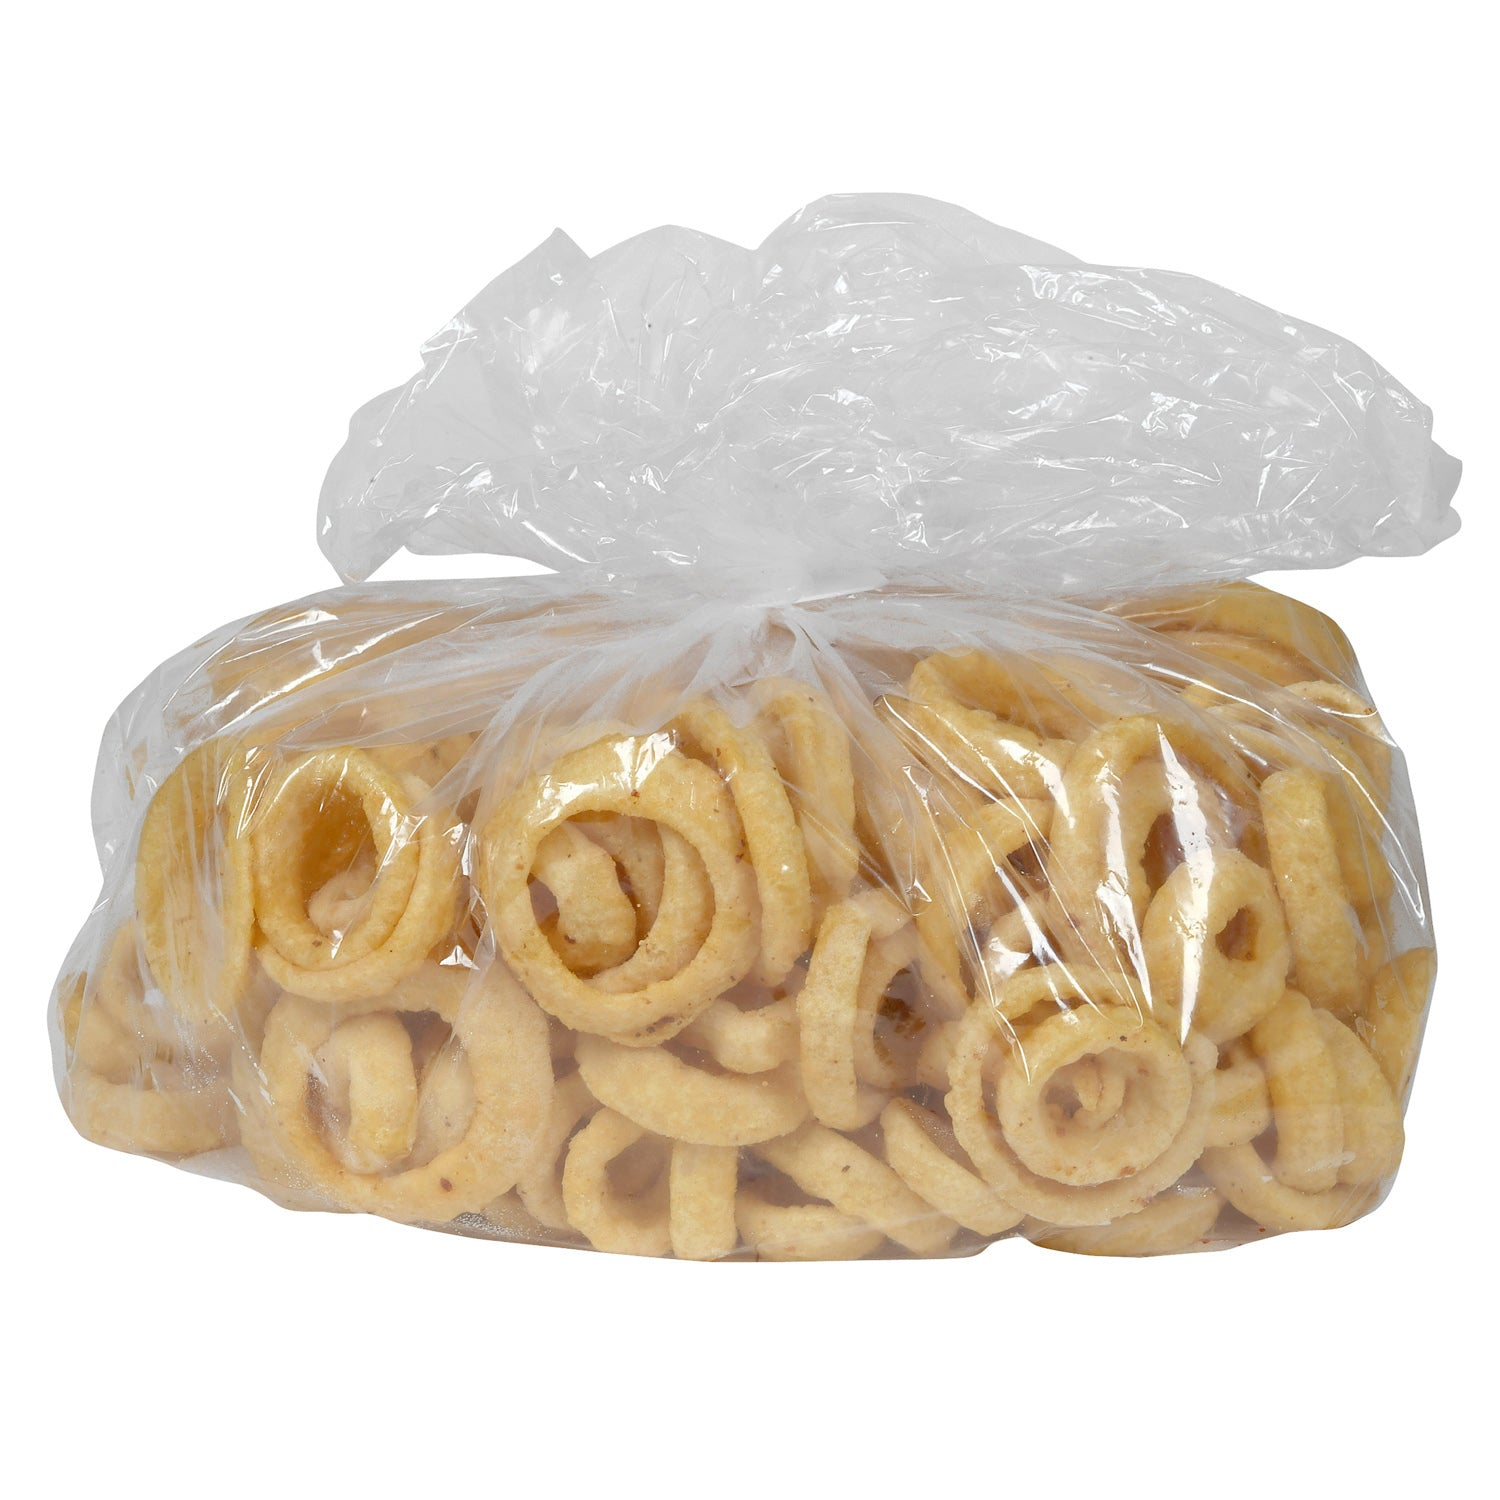 Sysco Imperial Frozen Battered Onion Rings 4 kg - 1 Pack [$7.50/kg]